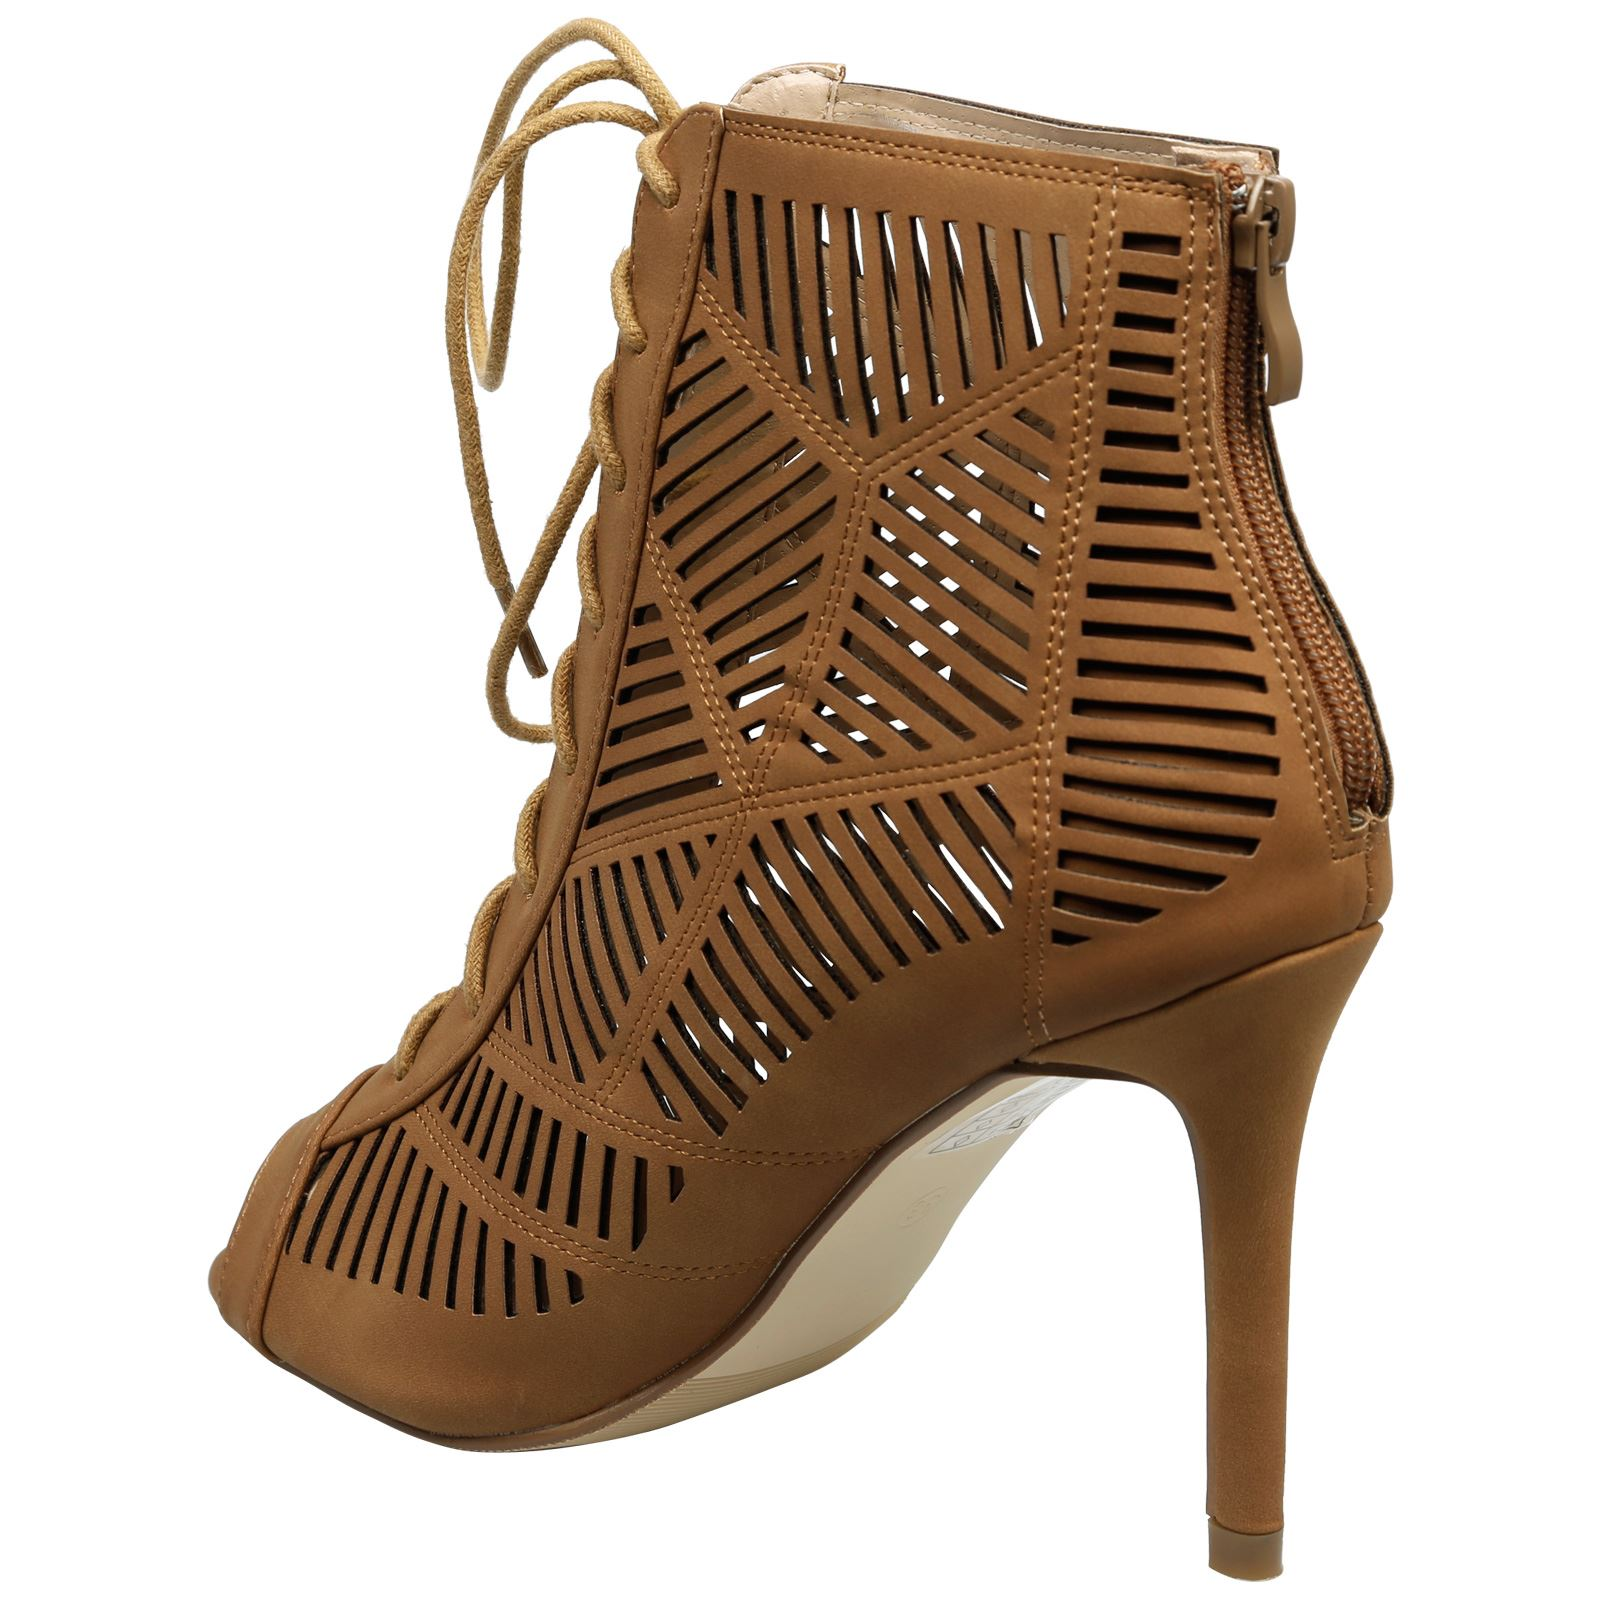 Anais-Womens-High-Heels-Stilettos-Lace-Up-Peep-Toe-Ankle-Boots-Ladies-Shoes-Size thumbnail 9